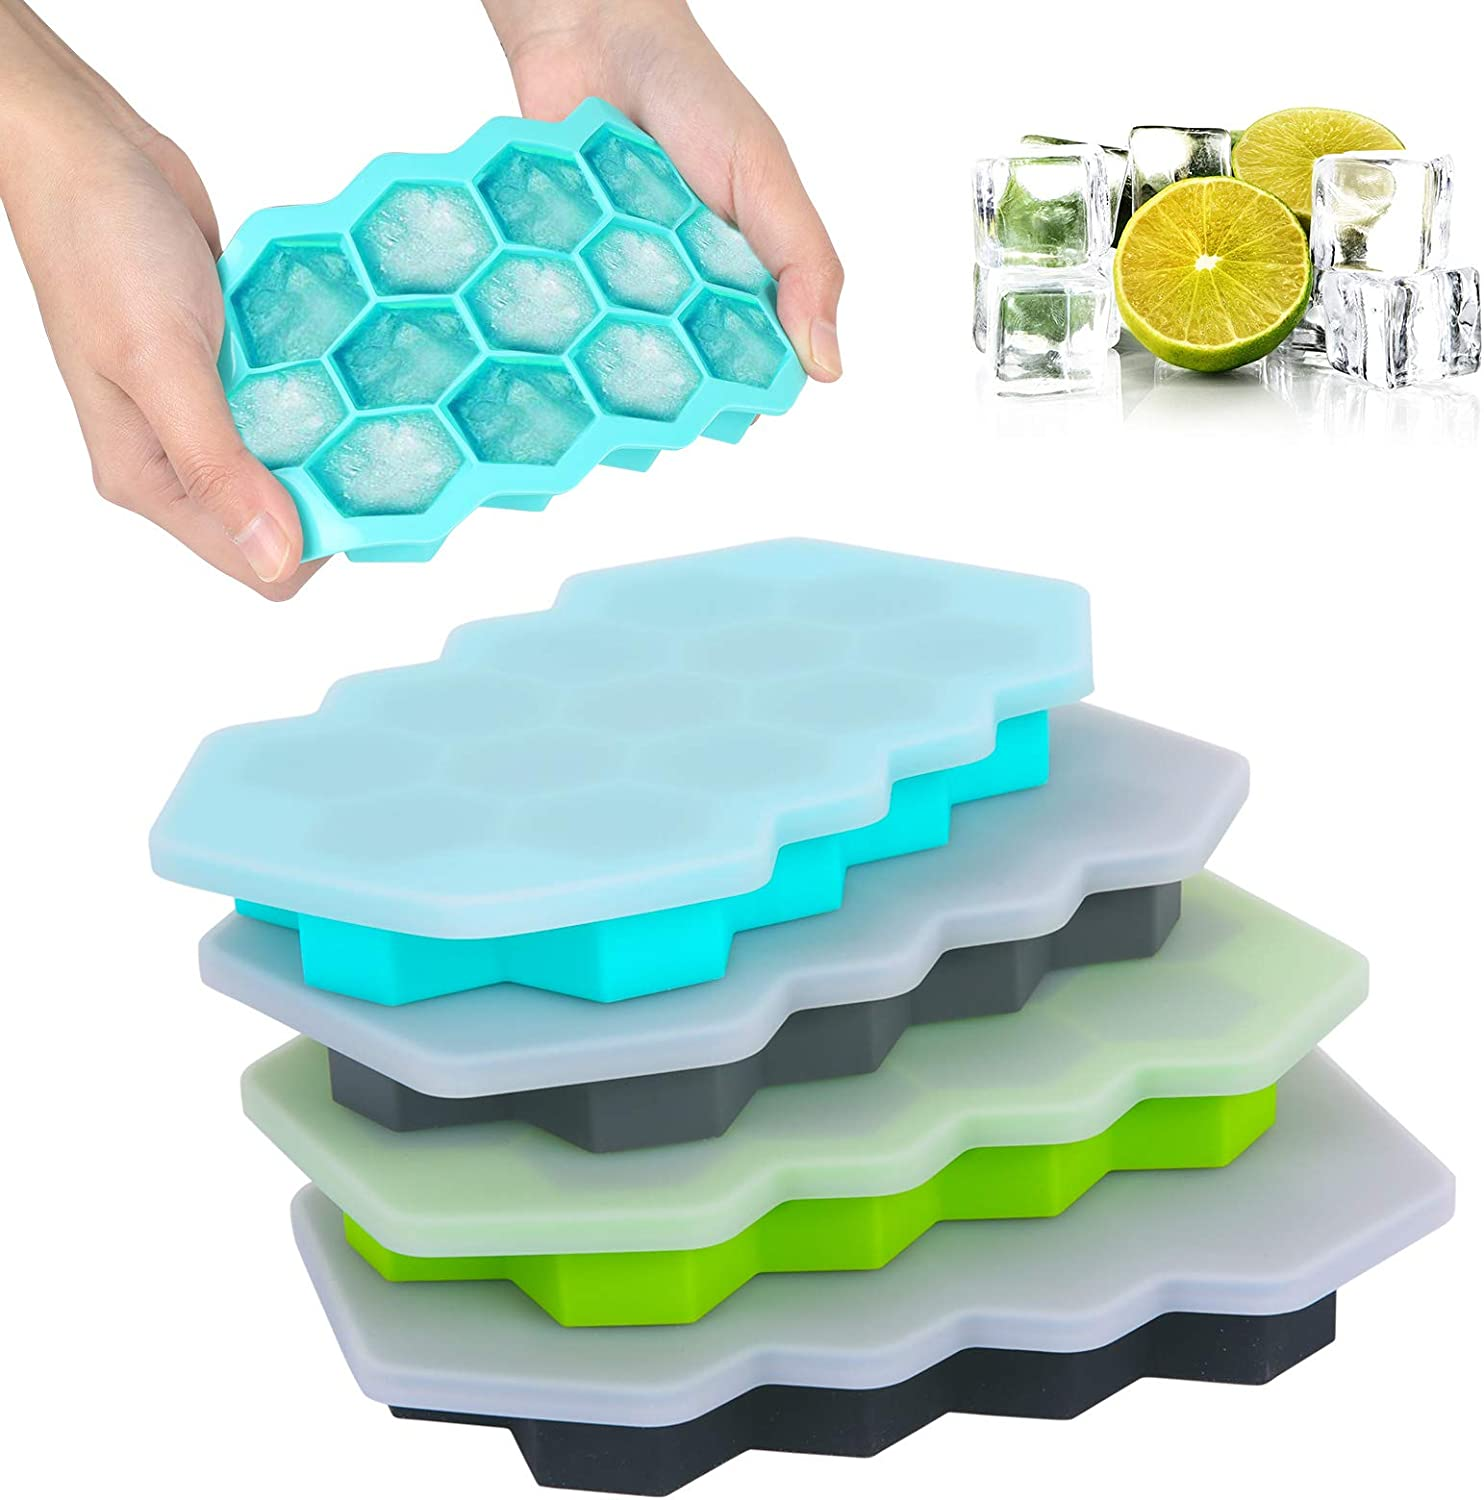 4pcs Silicone Ice Cube Tray with Lid, PAWACA BPA Free Easy Release ice cube molds & Mini Ice cube TrayS for Freezer Ice, Whiskey, Cocktails, Baby Food - Dishwasher Safe